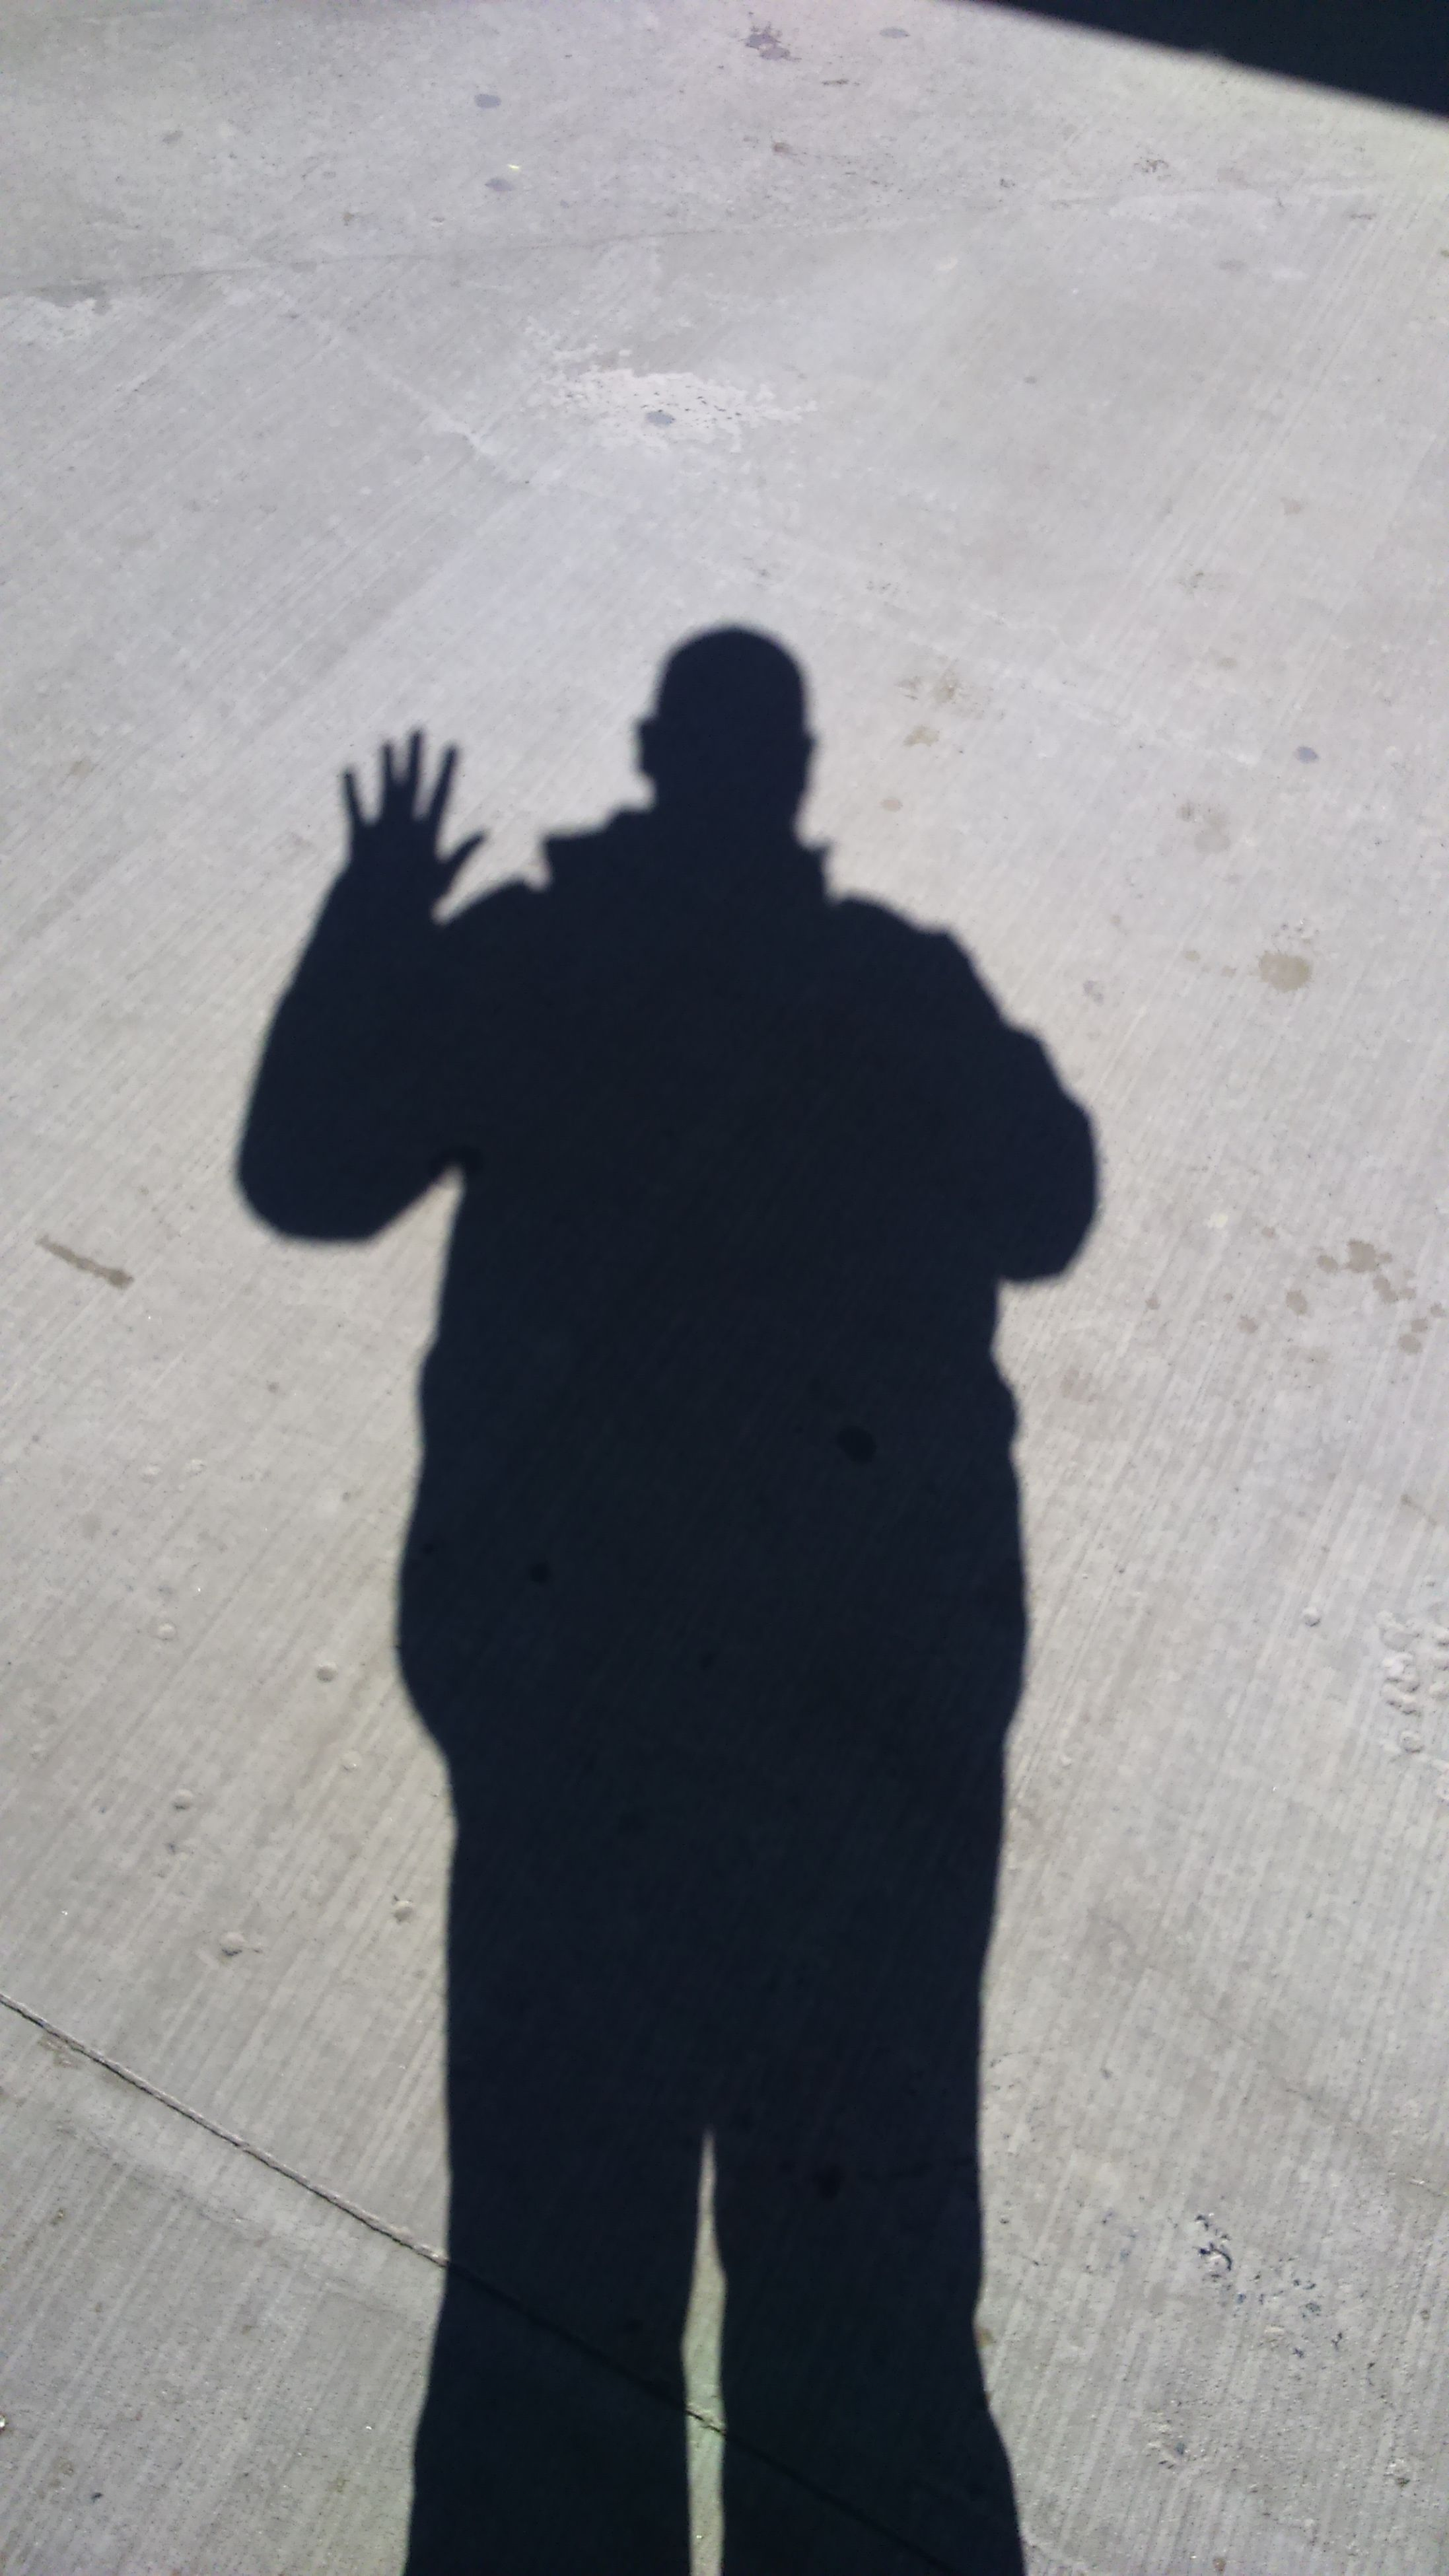 shadow, focus on shadow, high angle view, sunlight, lifestyles, silhouette, men, leisure activity, walking, unrecognizable person, full length, outline, outdoors, day, street, standing, person